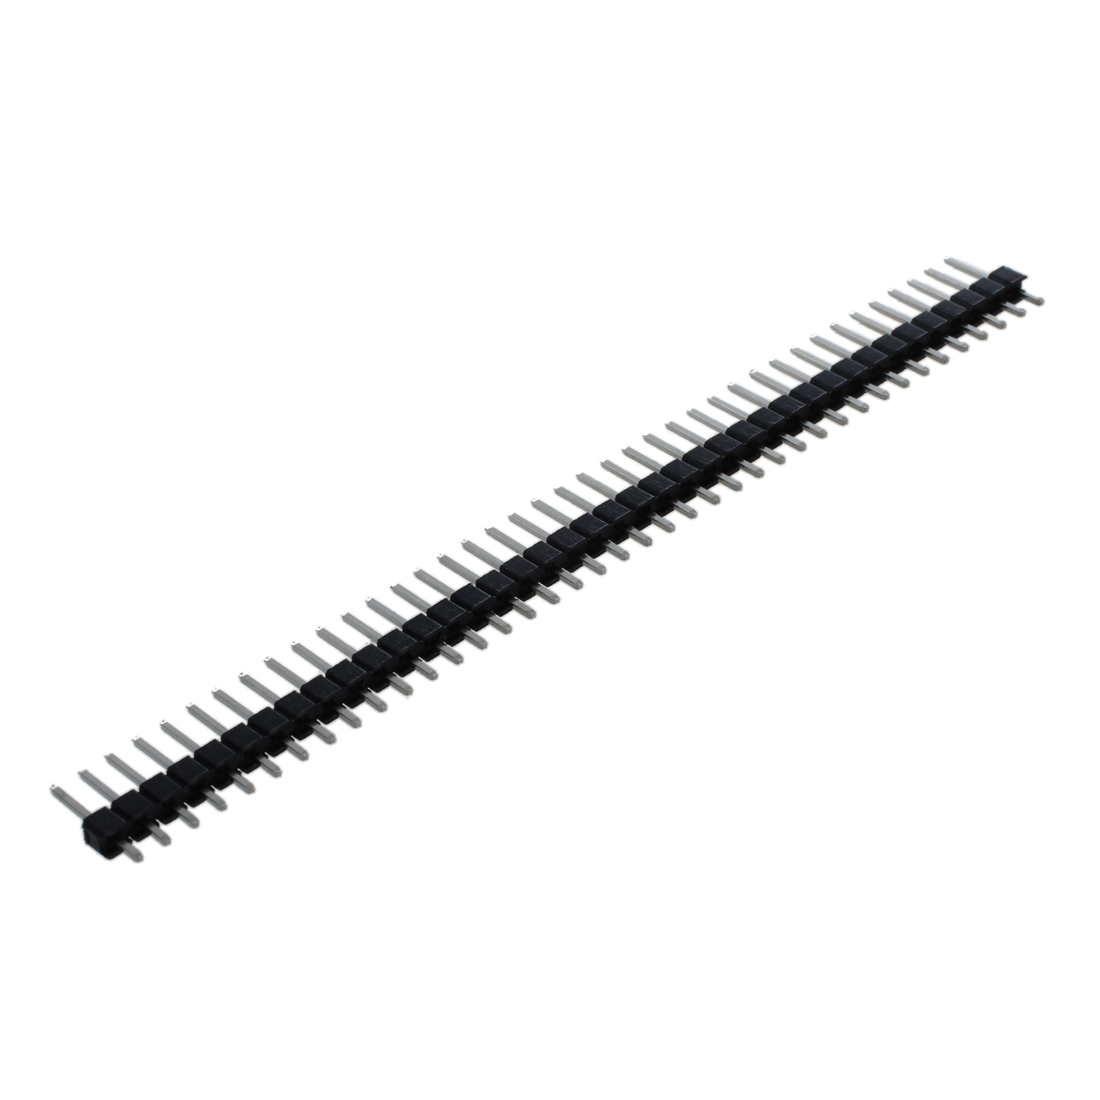 40pin 2 54mm Male Pcb Single Row Straight Header Strip